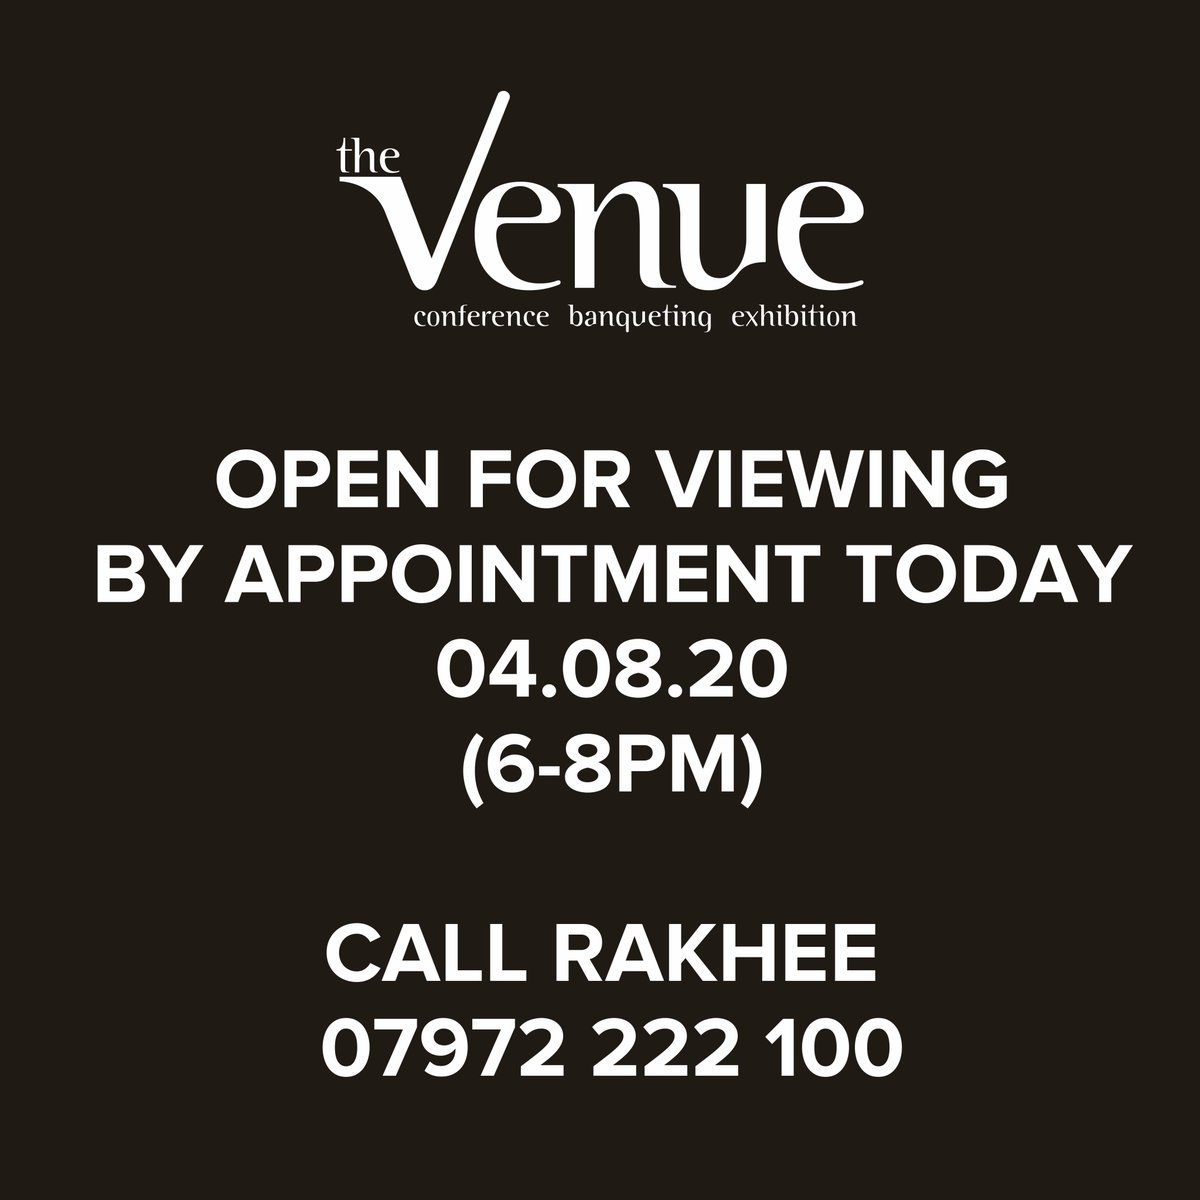 Call Rakhee to on 07972 222 100, discuss your event  A perfect place to host your unique: CONFERENCE . BANQUETING . EXHIBITION . CORPORATE EVENTS . WEDDINGS  http://www.thevenueltd.com   #wedding #weddingphotography #bridesmaiddress #bridesmaiddresses #weddingdress #weddinggown pic.twitter.com/Pc4djie3VF